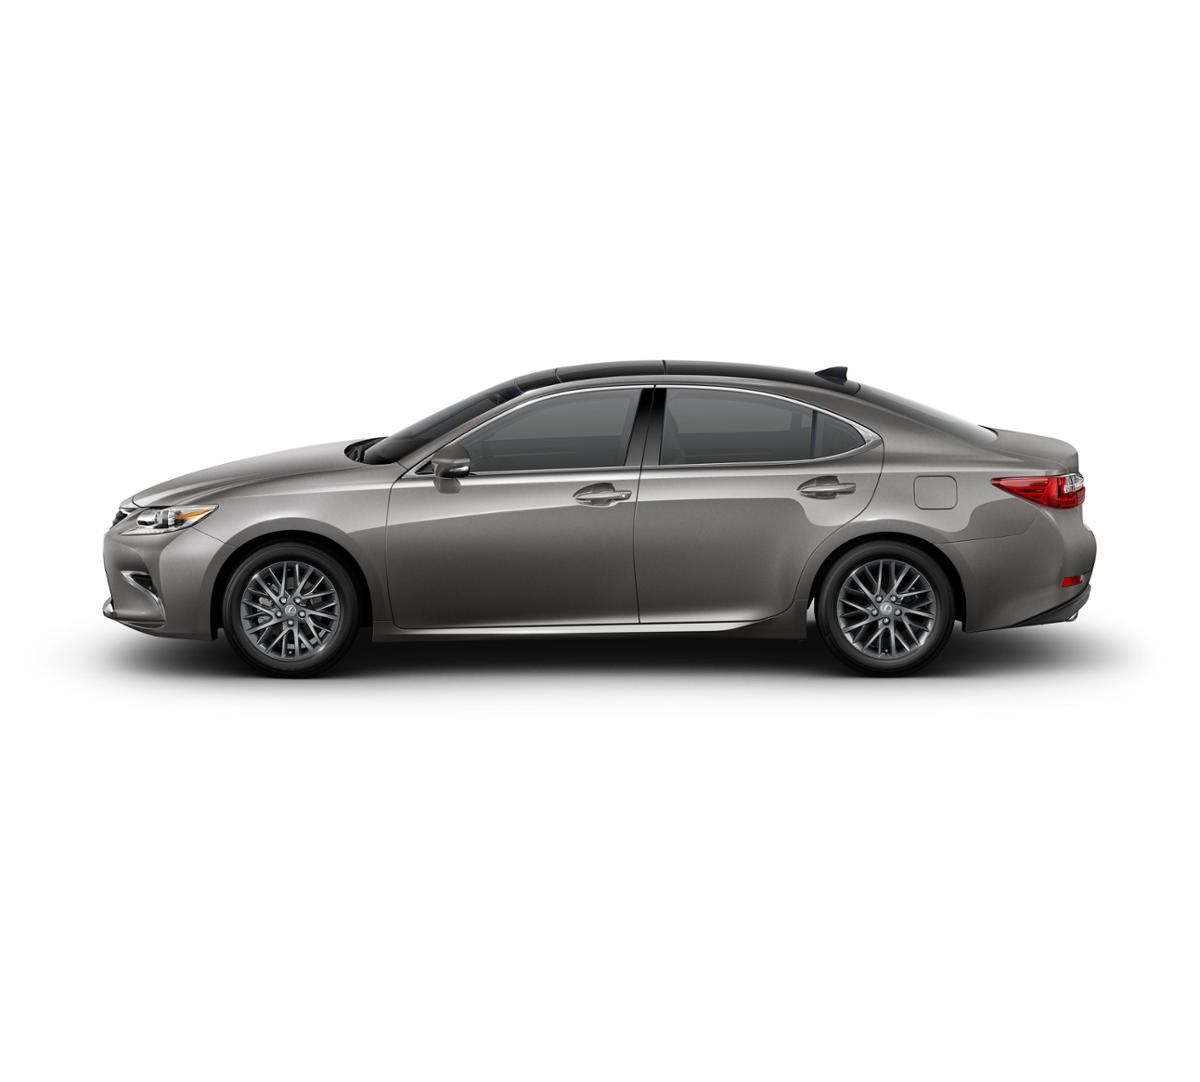 2018 Lexus Es 350 Albuquerque Nm Lexus Of Albuquerque